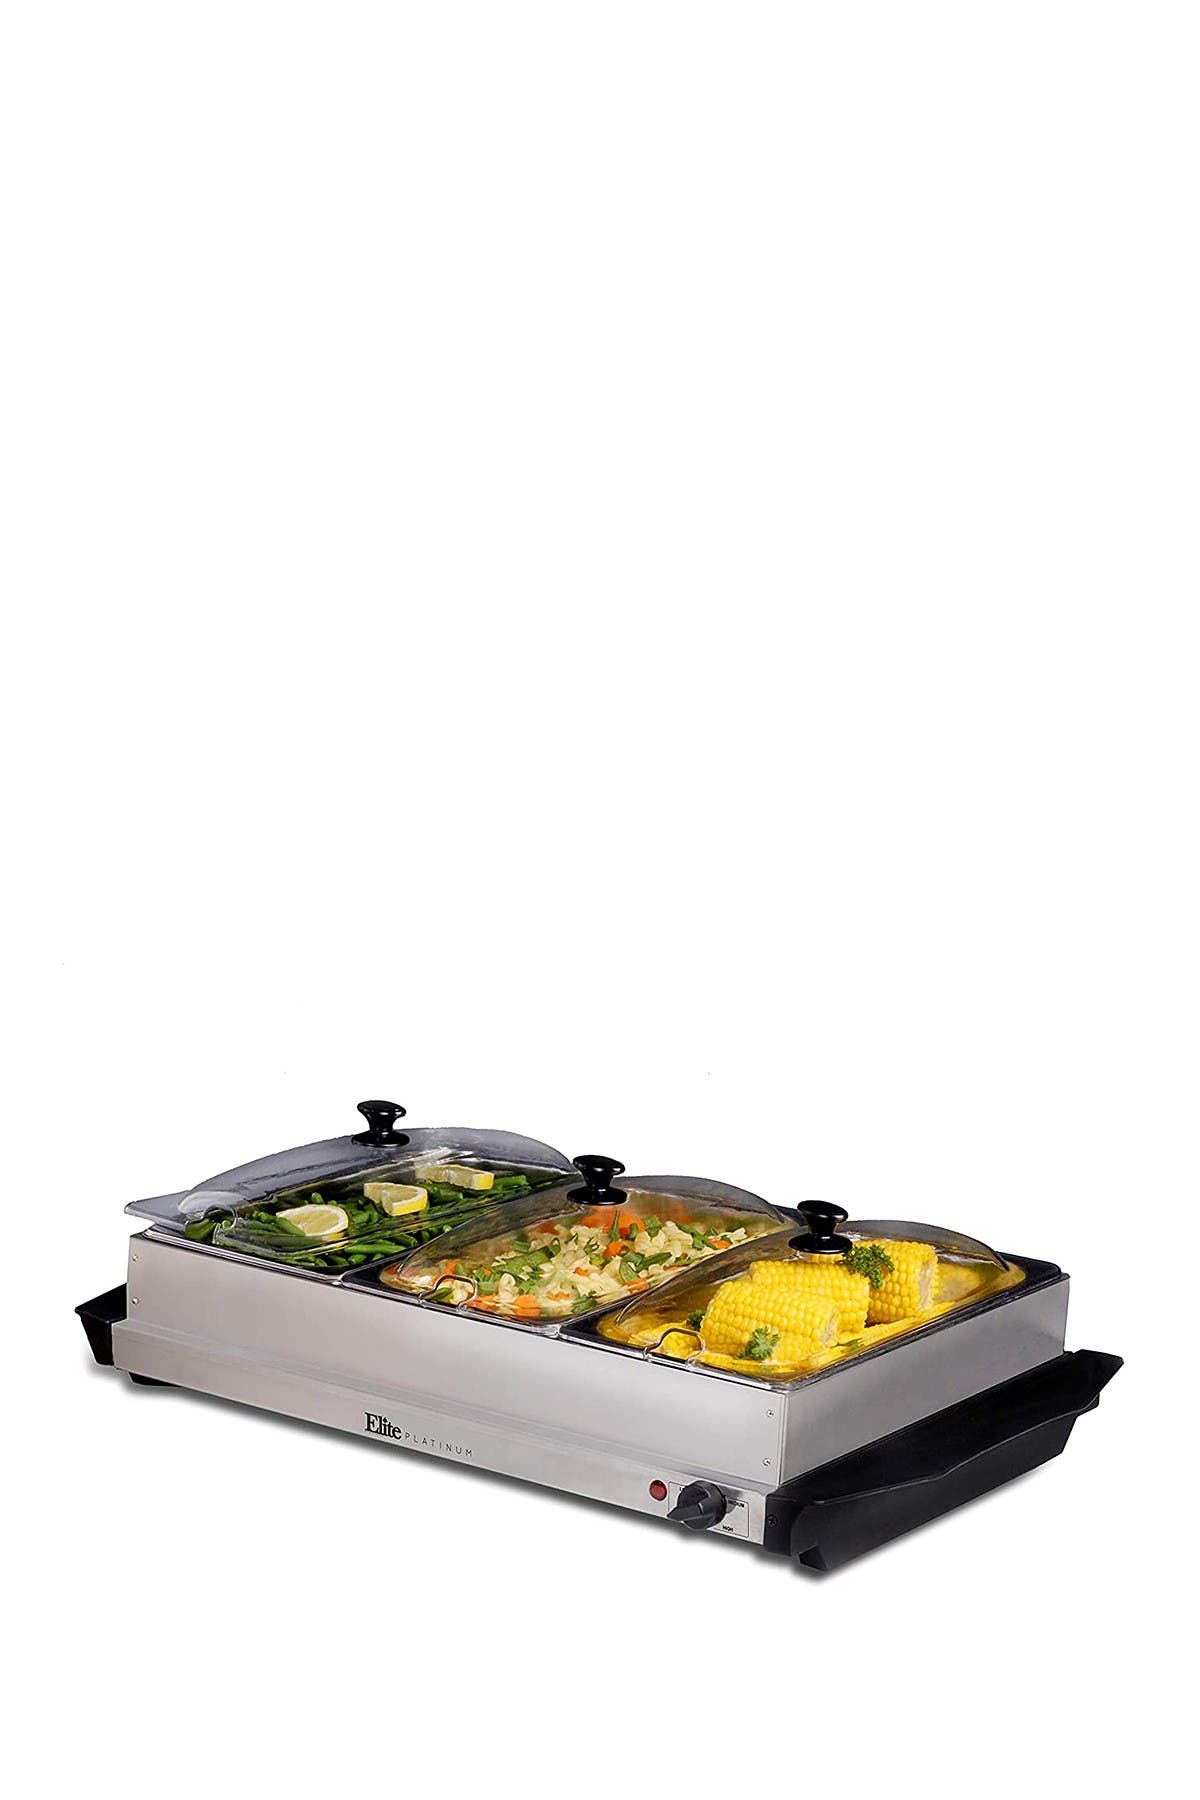 Image of MAXI-MATIC Elite Platinum 3 x 2.5 Qt. Stainless Steel Electric Buffet Server Food Warmer